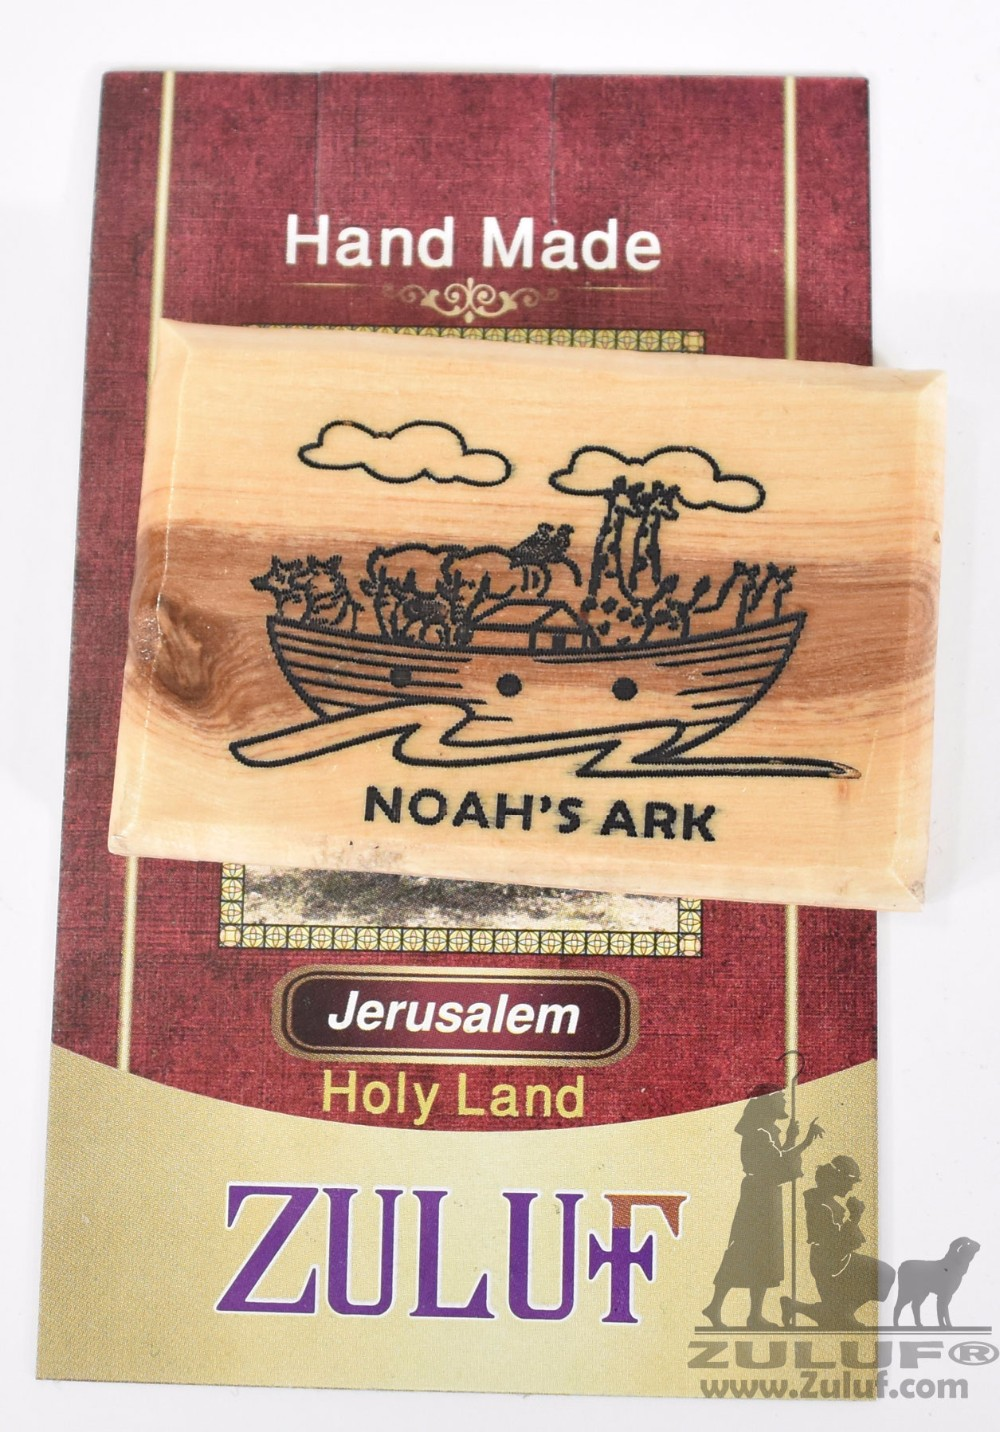 Noah's Ark Olive Wood Magnet - Zuluf Olive Wood Factory - MAG028